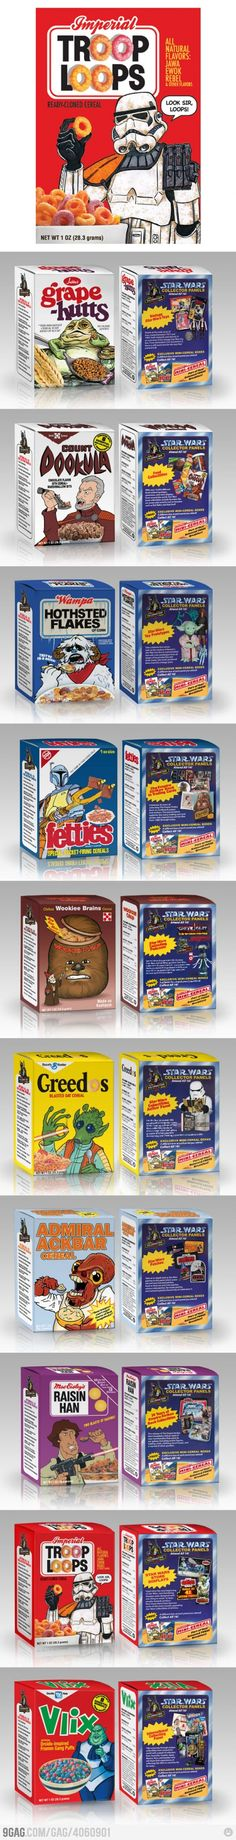 The Entire Collection of Star Wars Cereals